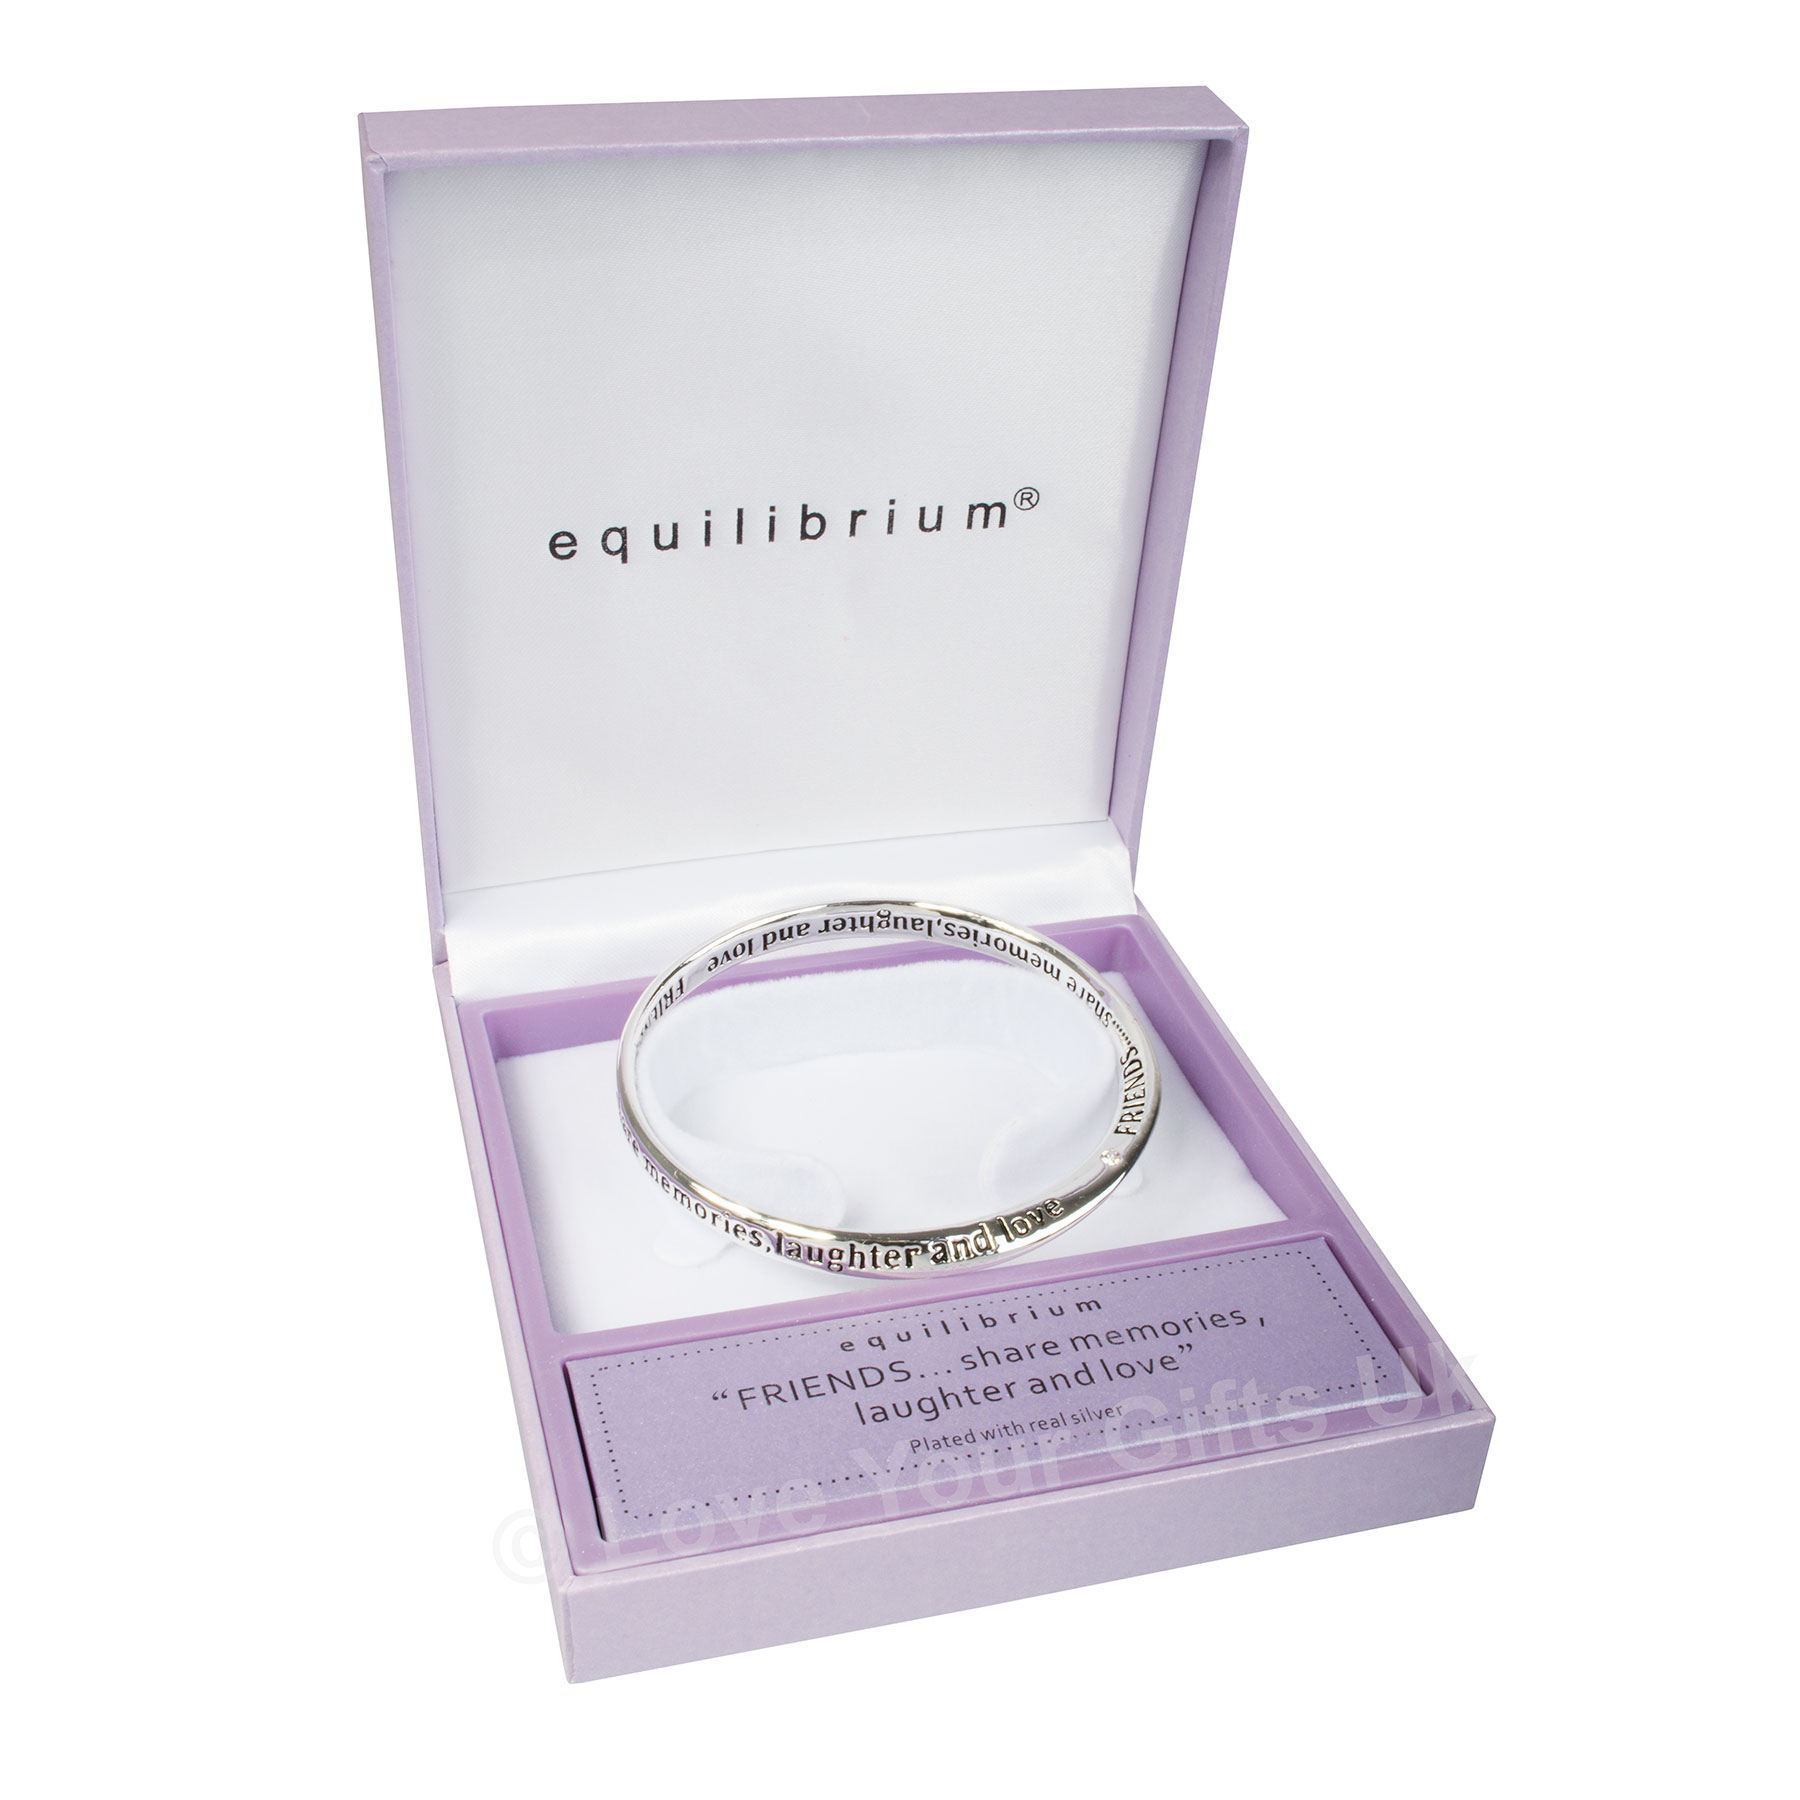 'Friends Share Memories, Laughter and Love' - Silver Plated Bangle